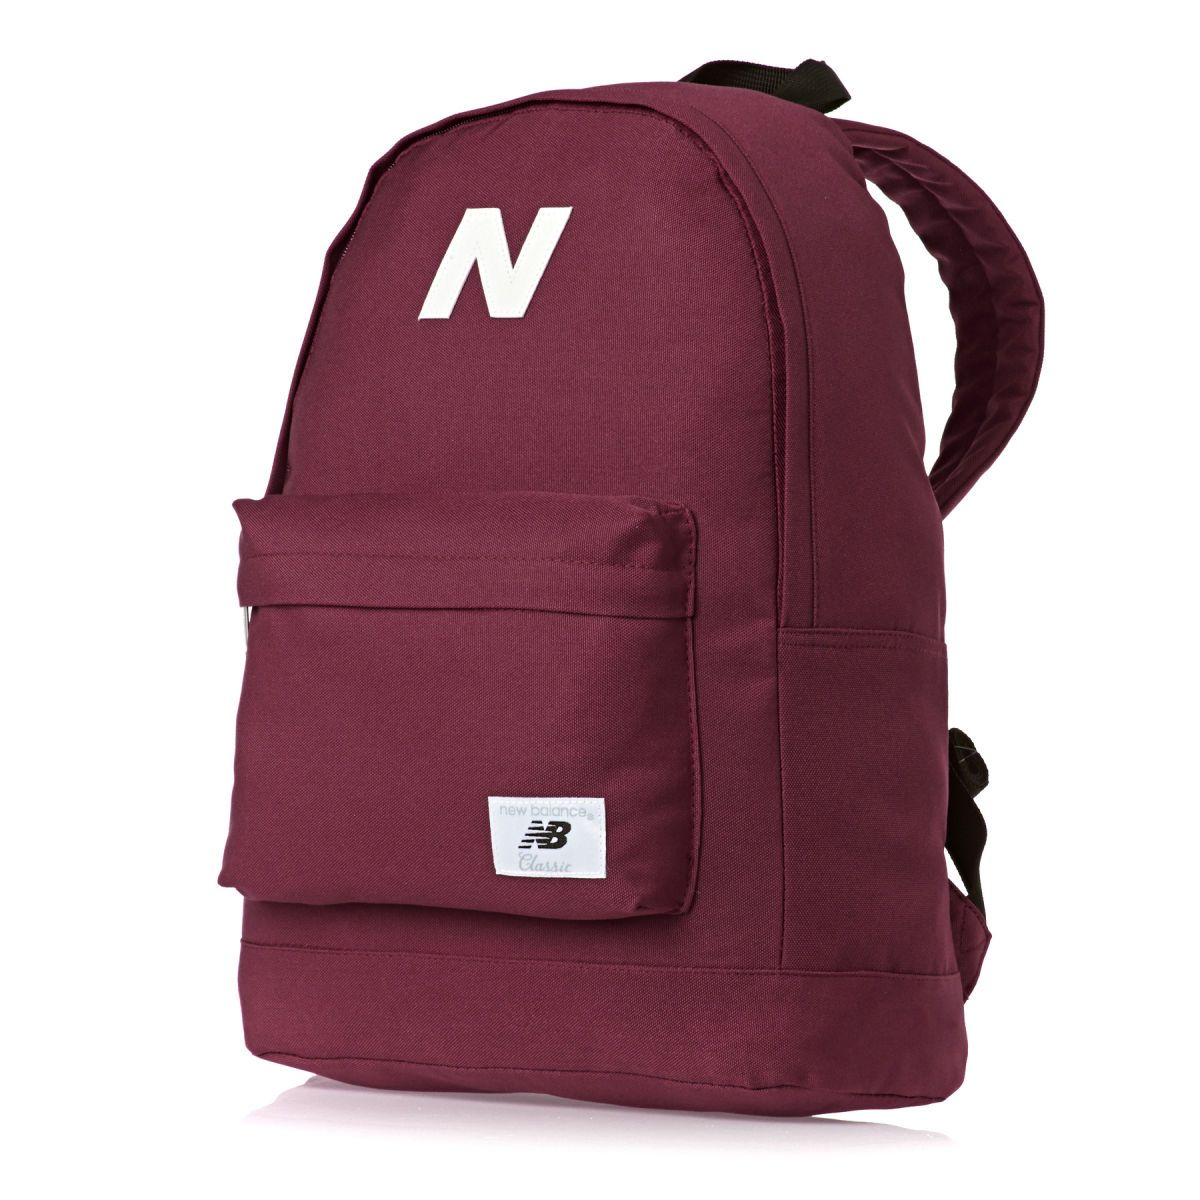 f7cc7f27f4 New Balance Mellow Backpack - Burgundy | Back to School | Backpacks ...